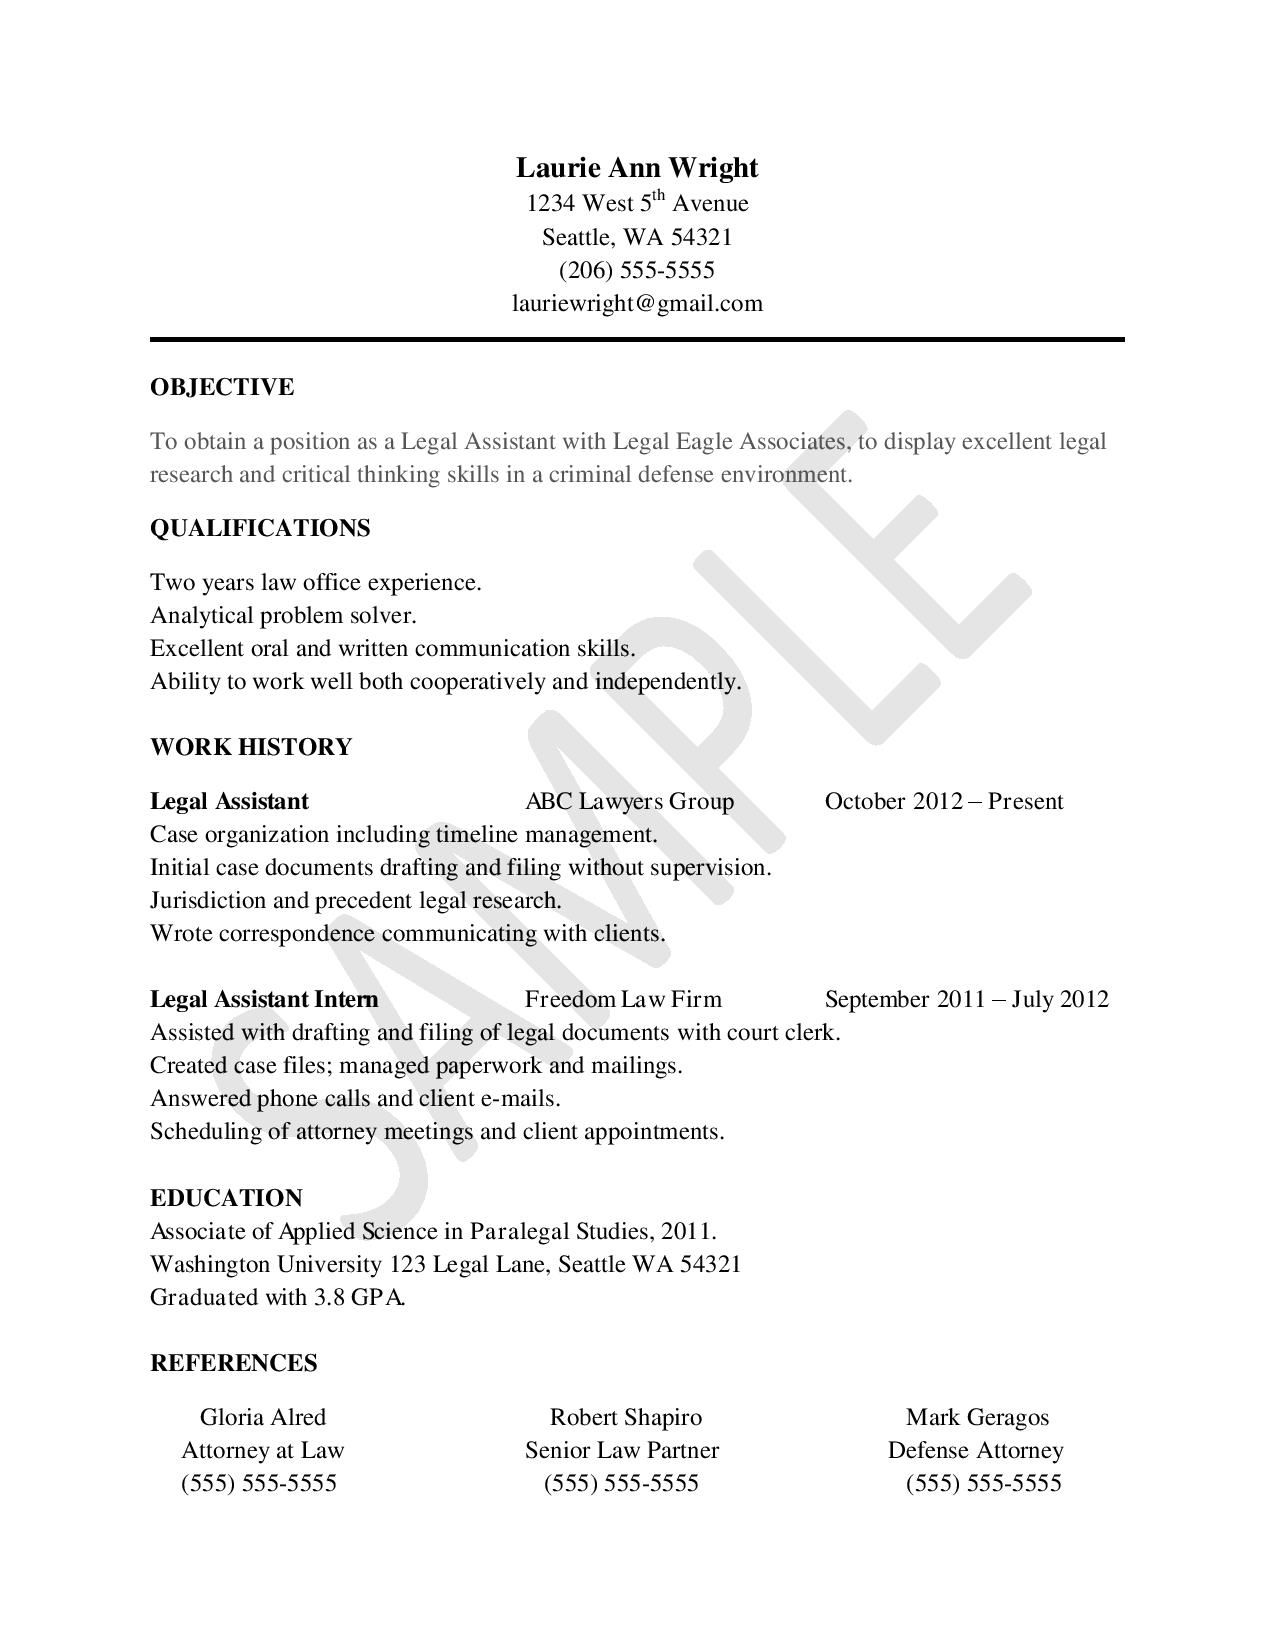 Sample Resume For Legal Assistants  Law Student Resume